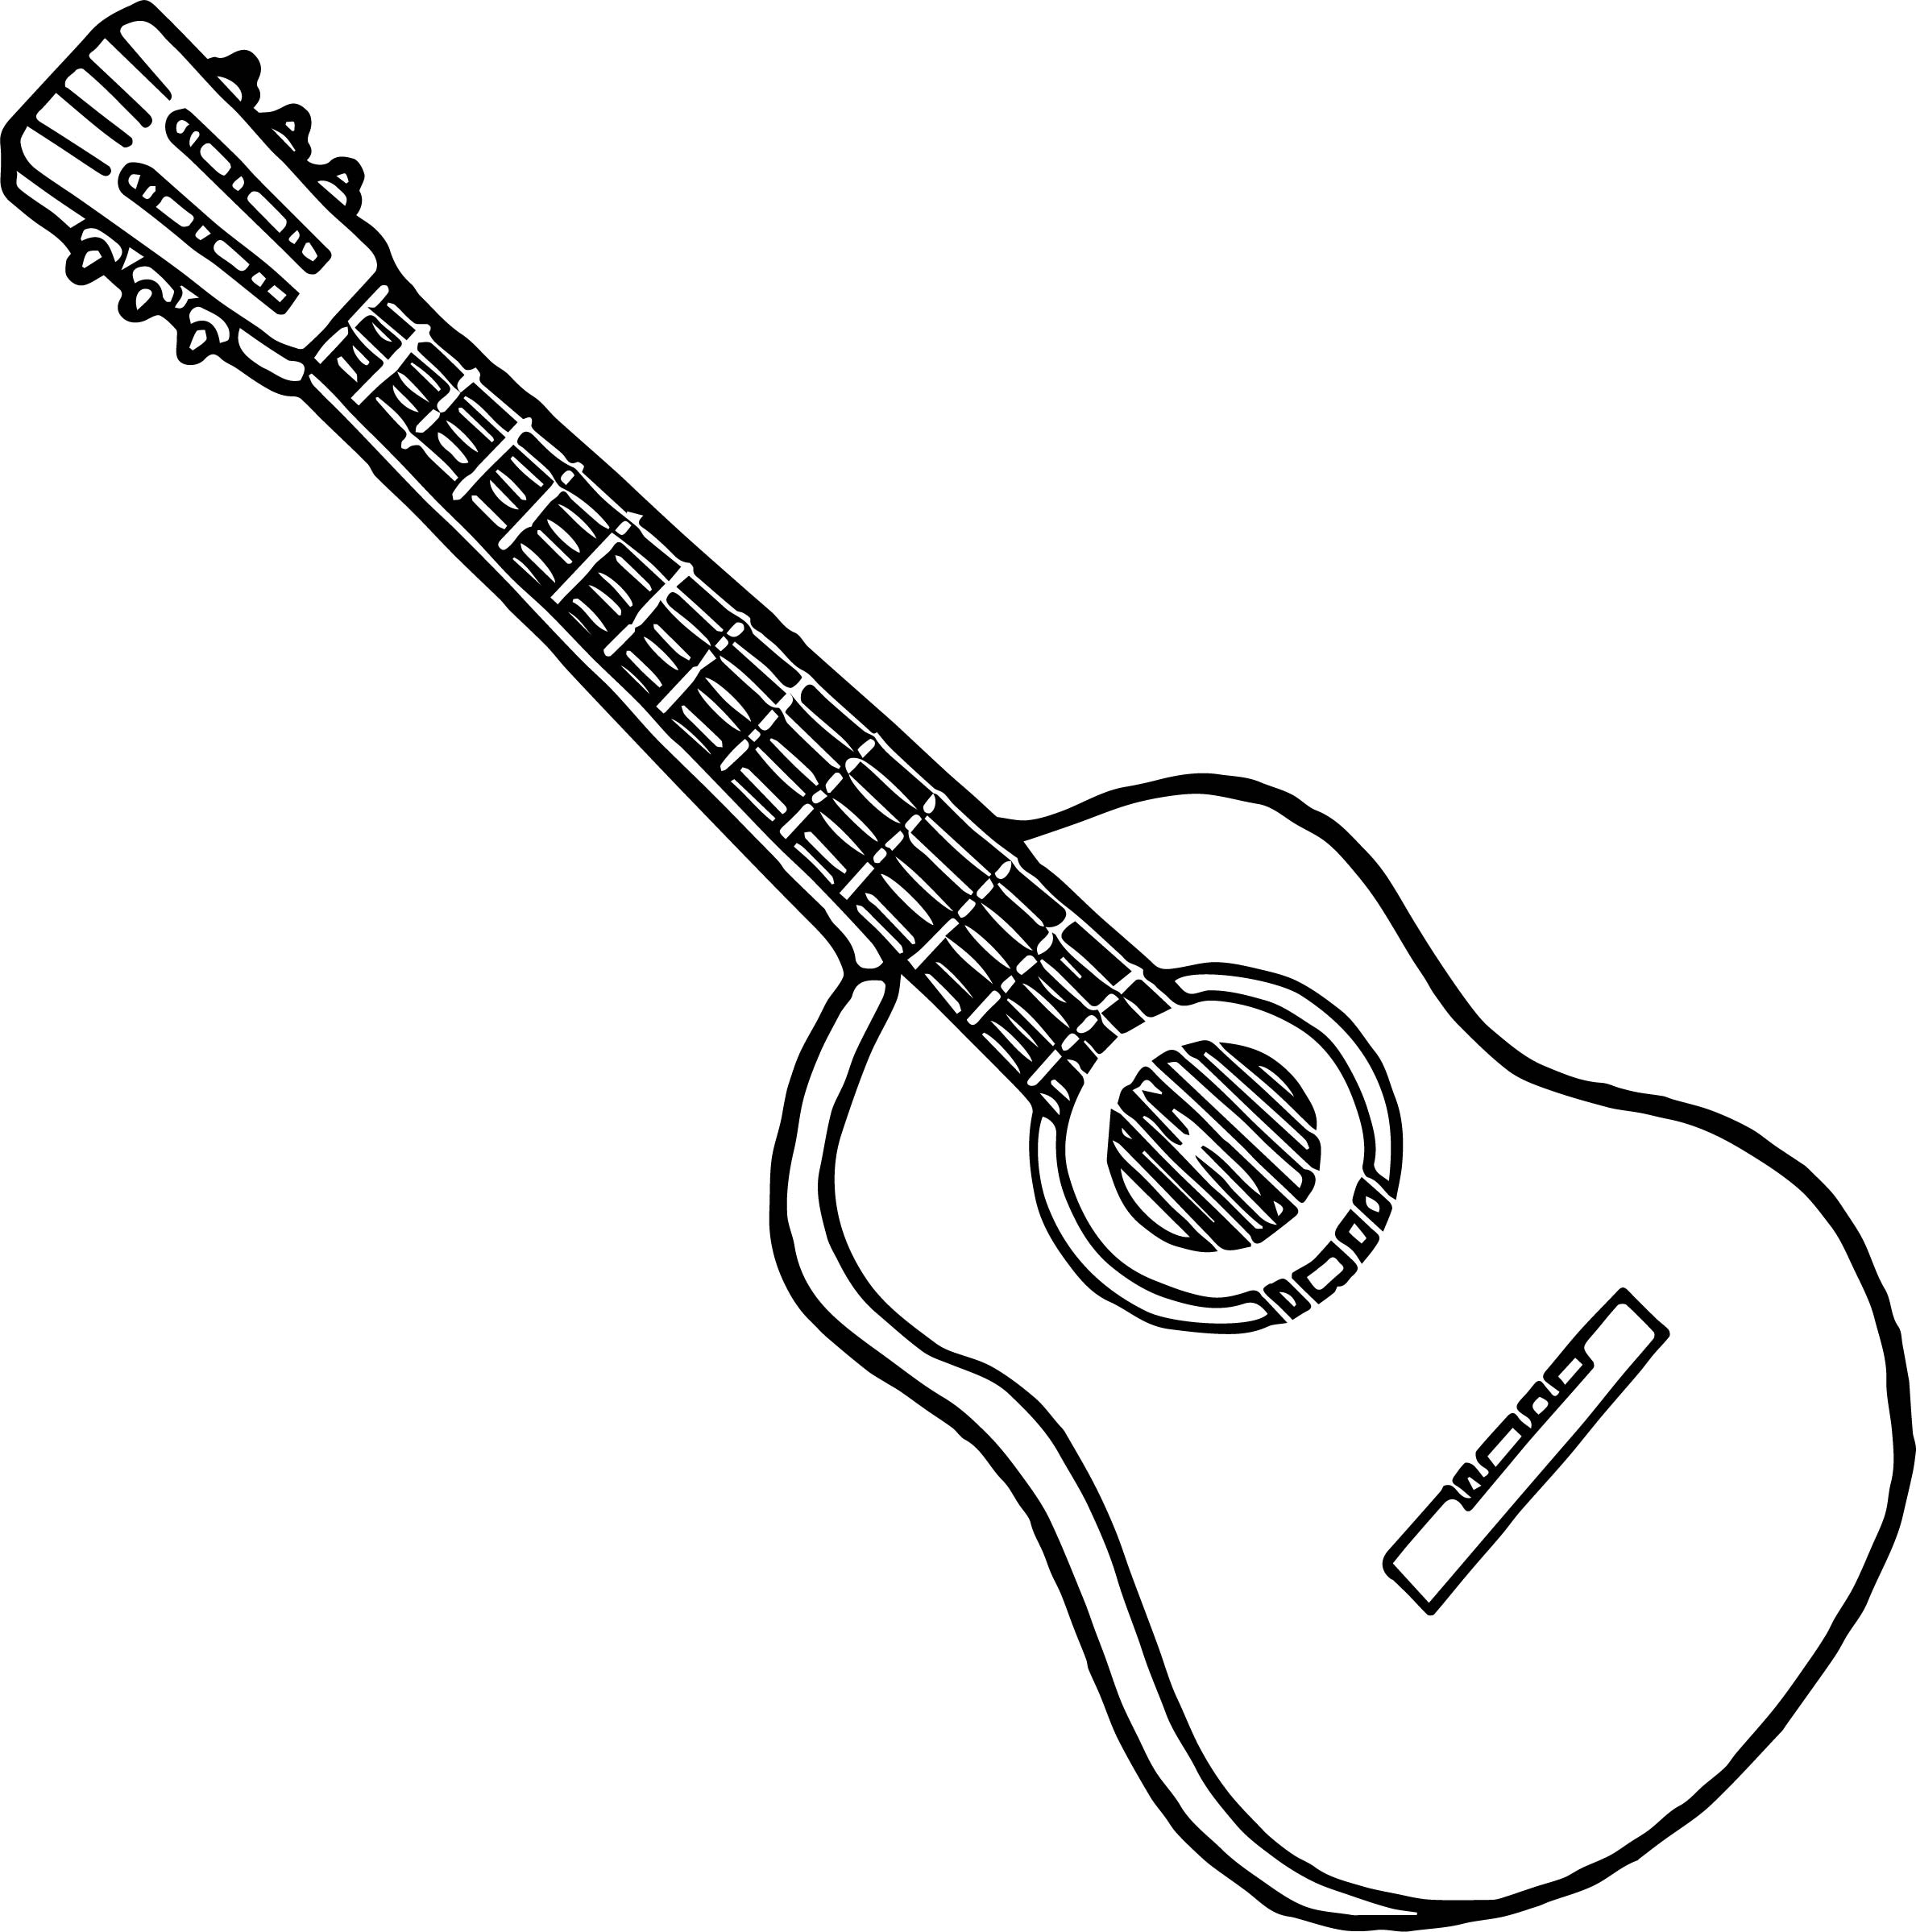 electric guitar coloring page electric guitar line drawing at getdrawings free download coloring page electric guitar